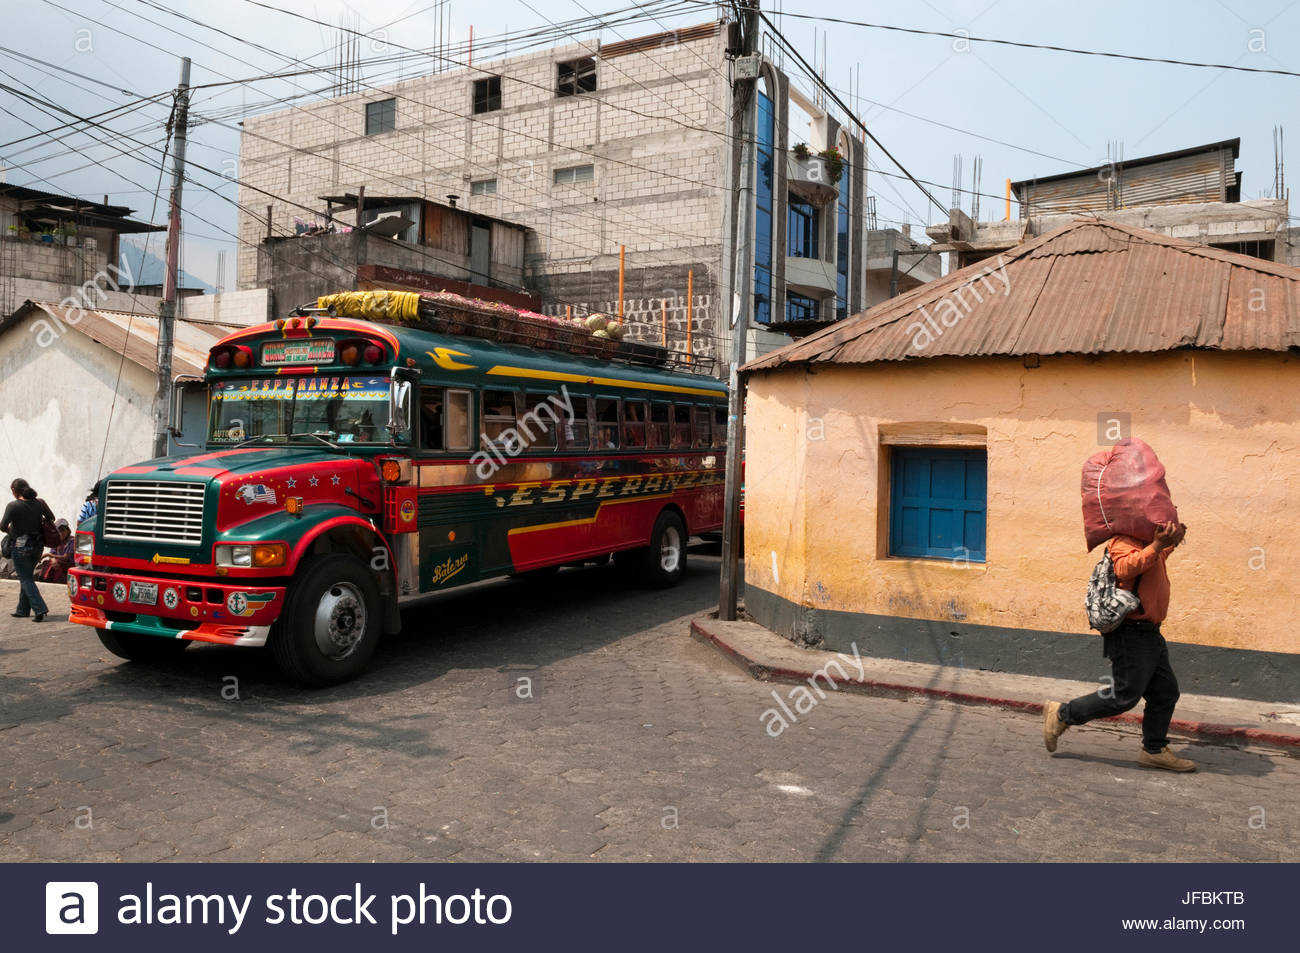 A colorful bus in the streets of Santiago Atitlan. Stock Photo